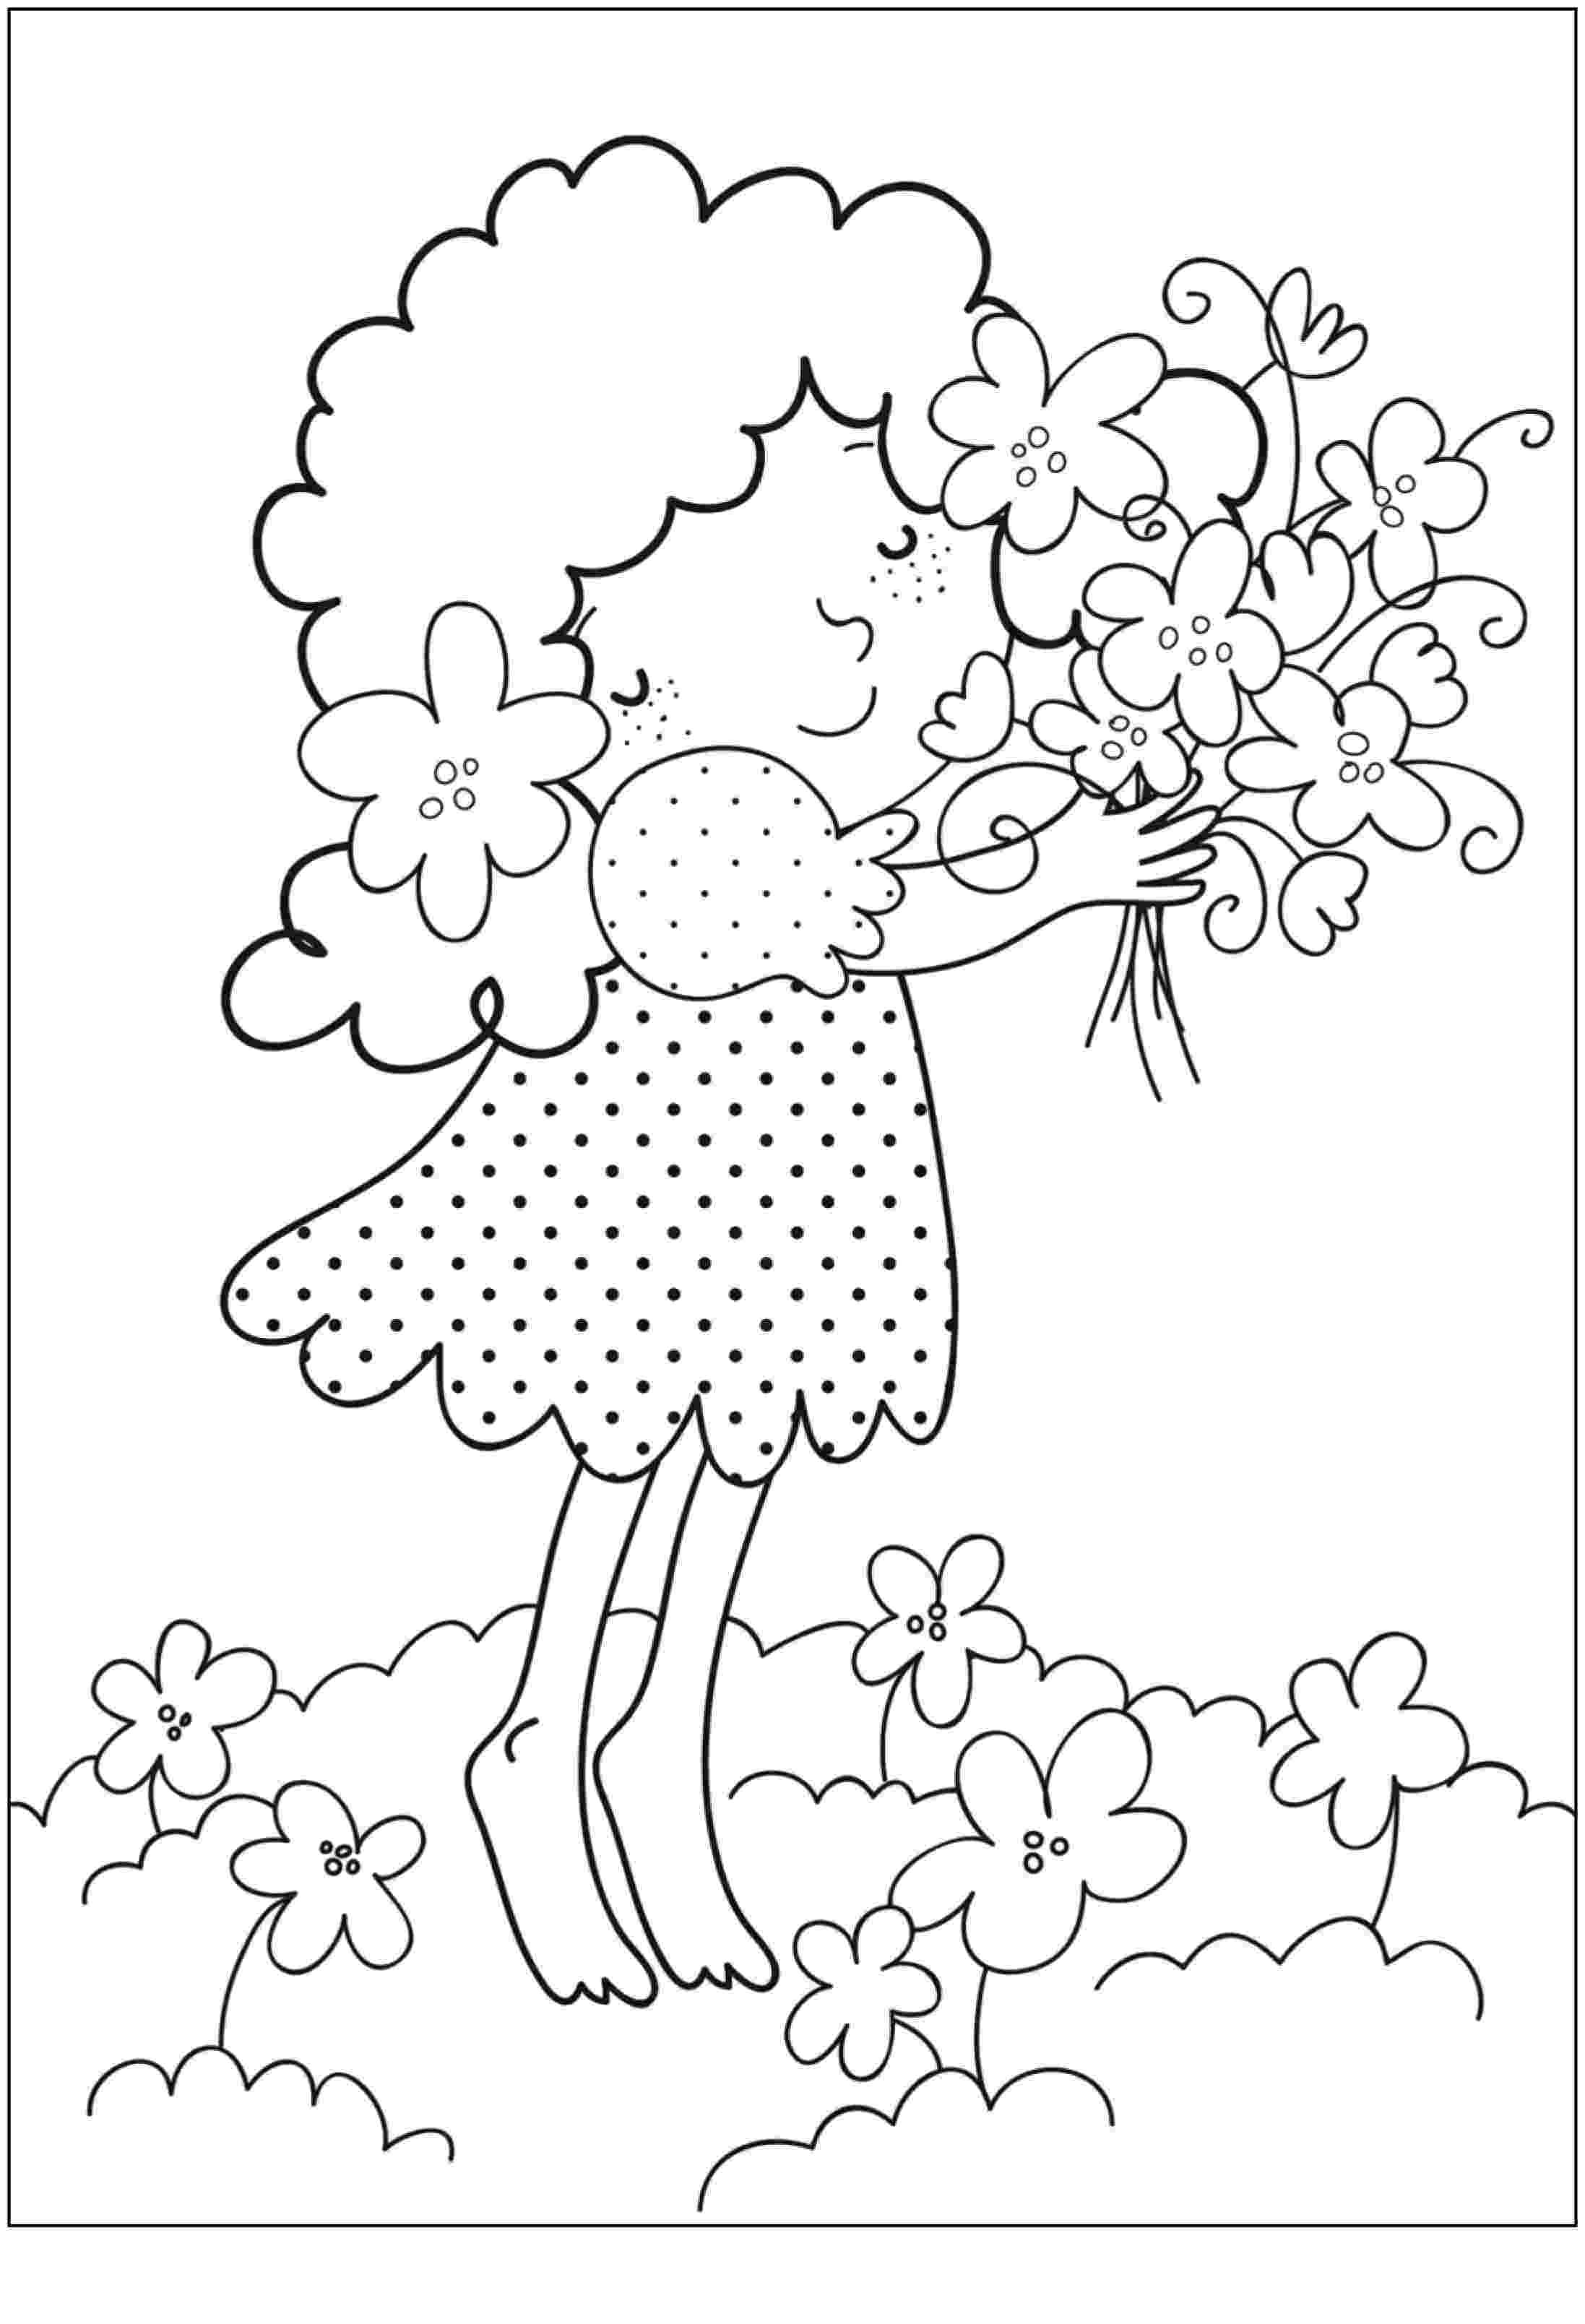 flower bouquet coloring pages spring flower coloring pages to download and print for free coloring pages flower bouquet